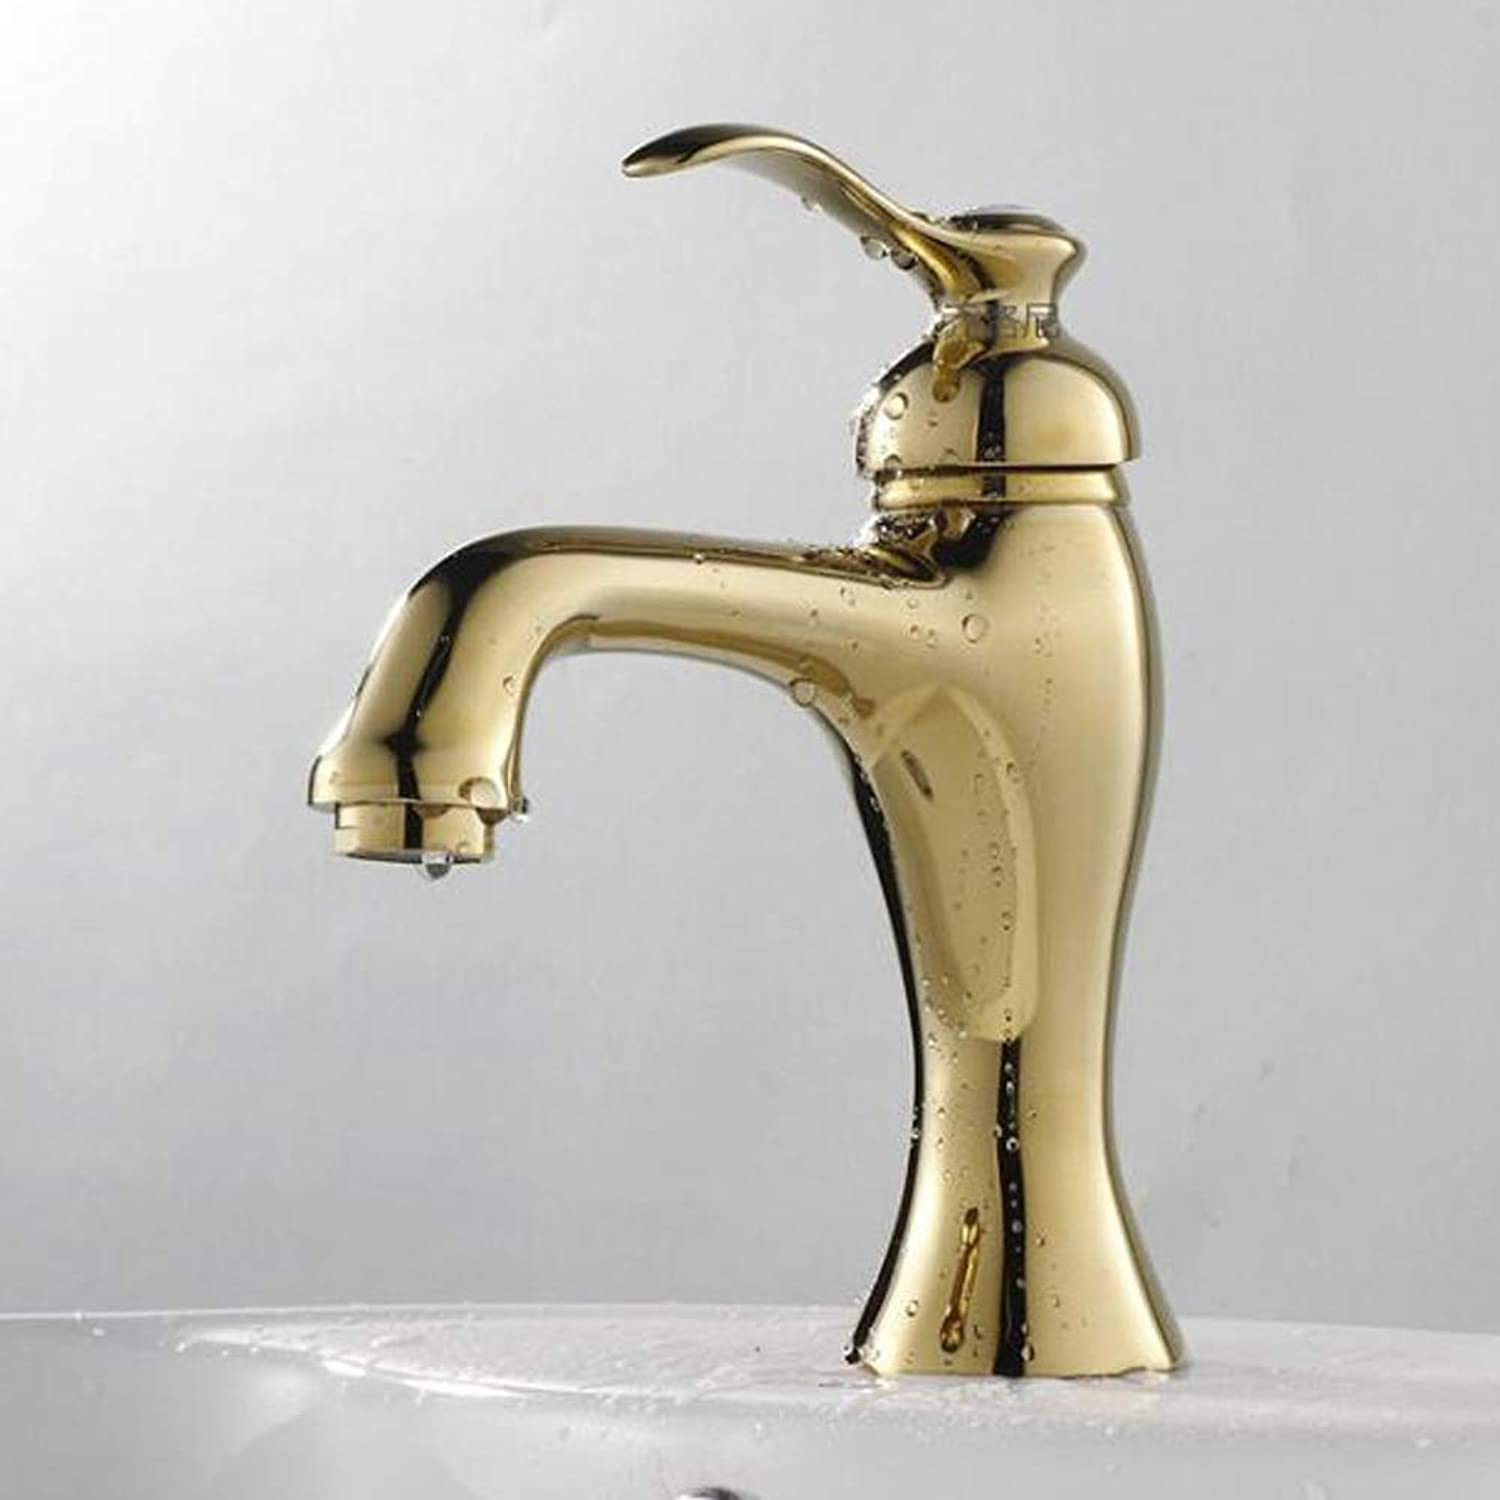 Bathroom Kitchen Sink Faucet,European Style gold-Plated Lavatory Faucet All Brass No Lead Bathroom Sink Hot Cold Mixer Tap,High,Short